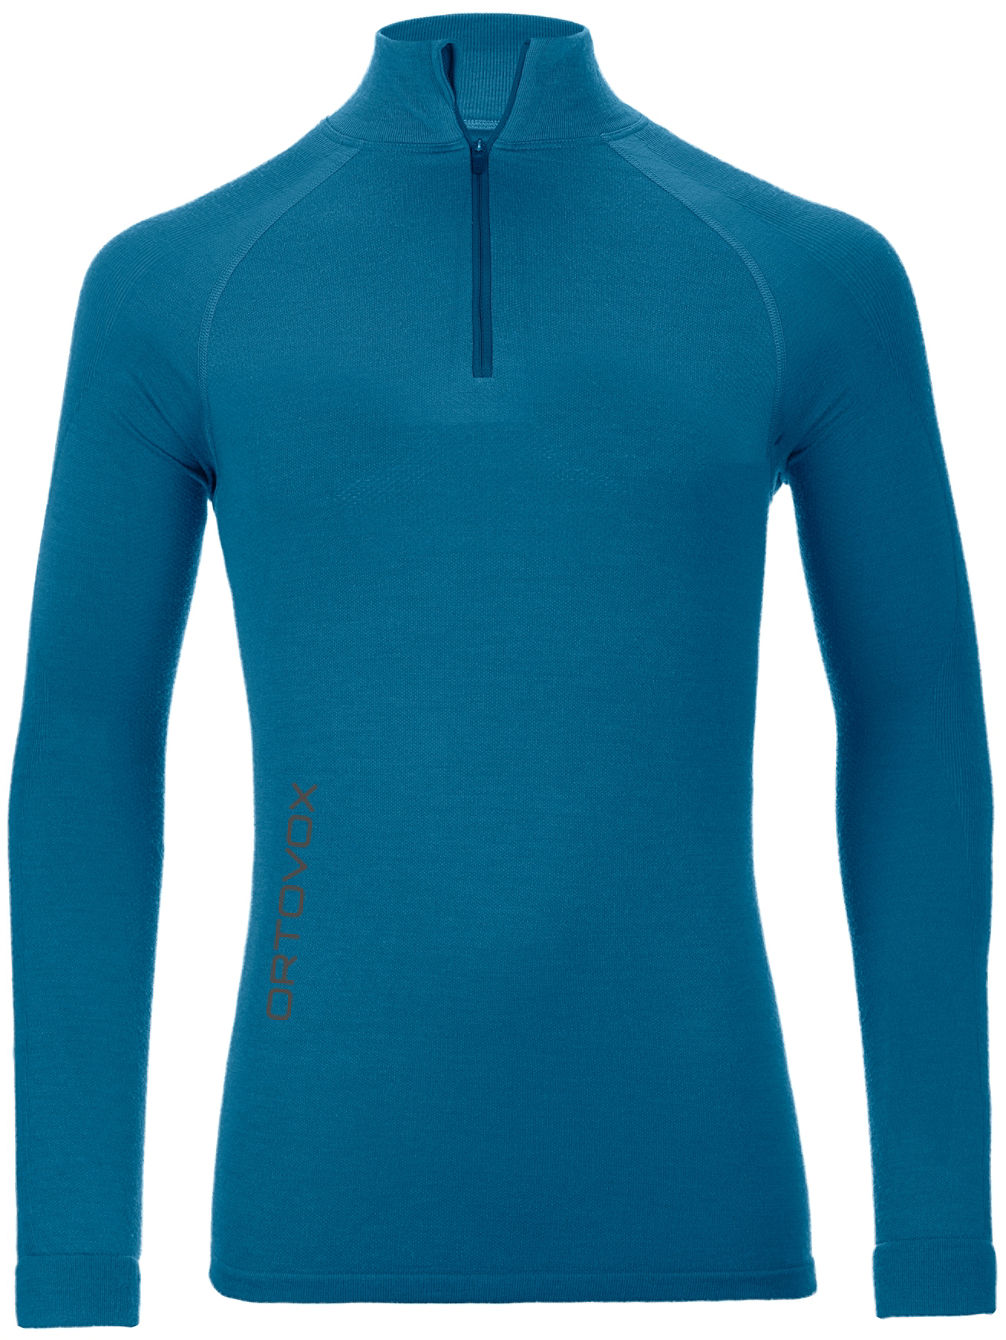 Merino Comp Zip Neck Tech Tee LS